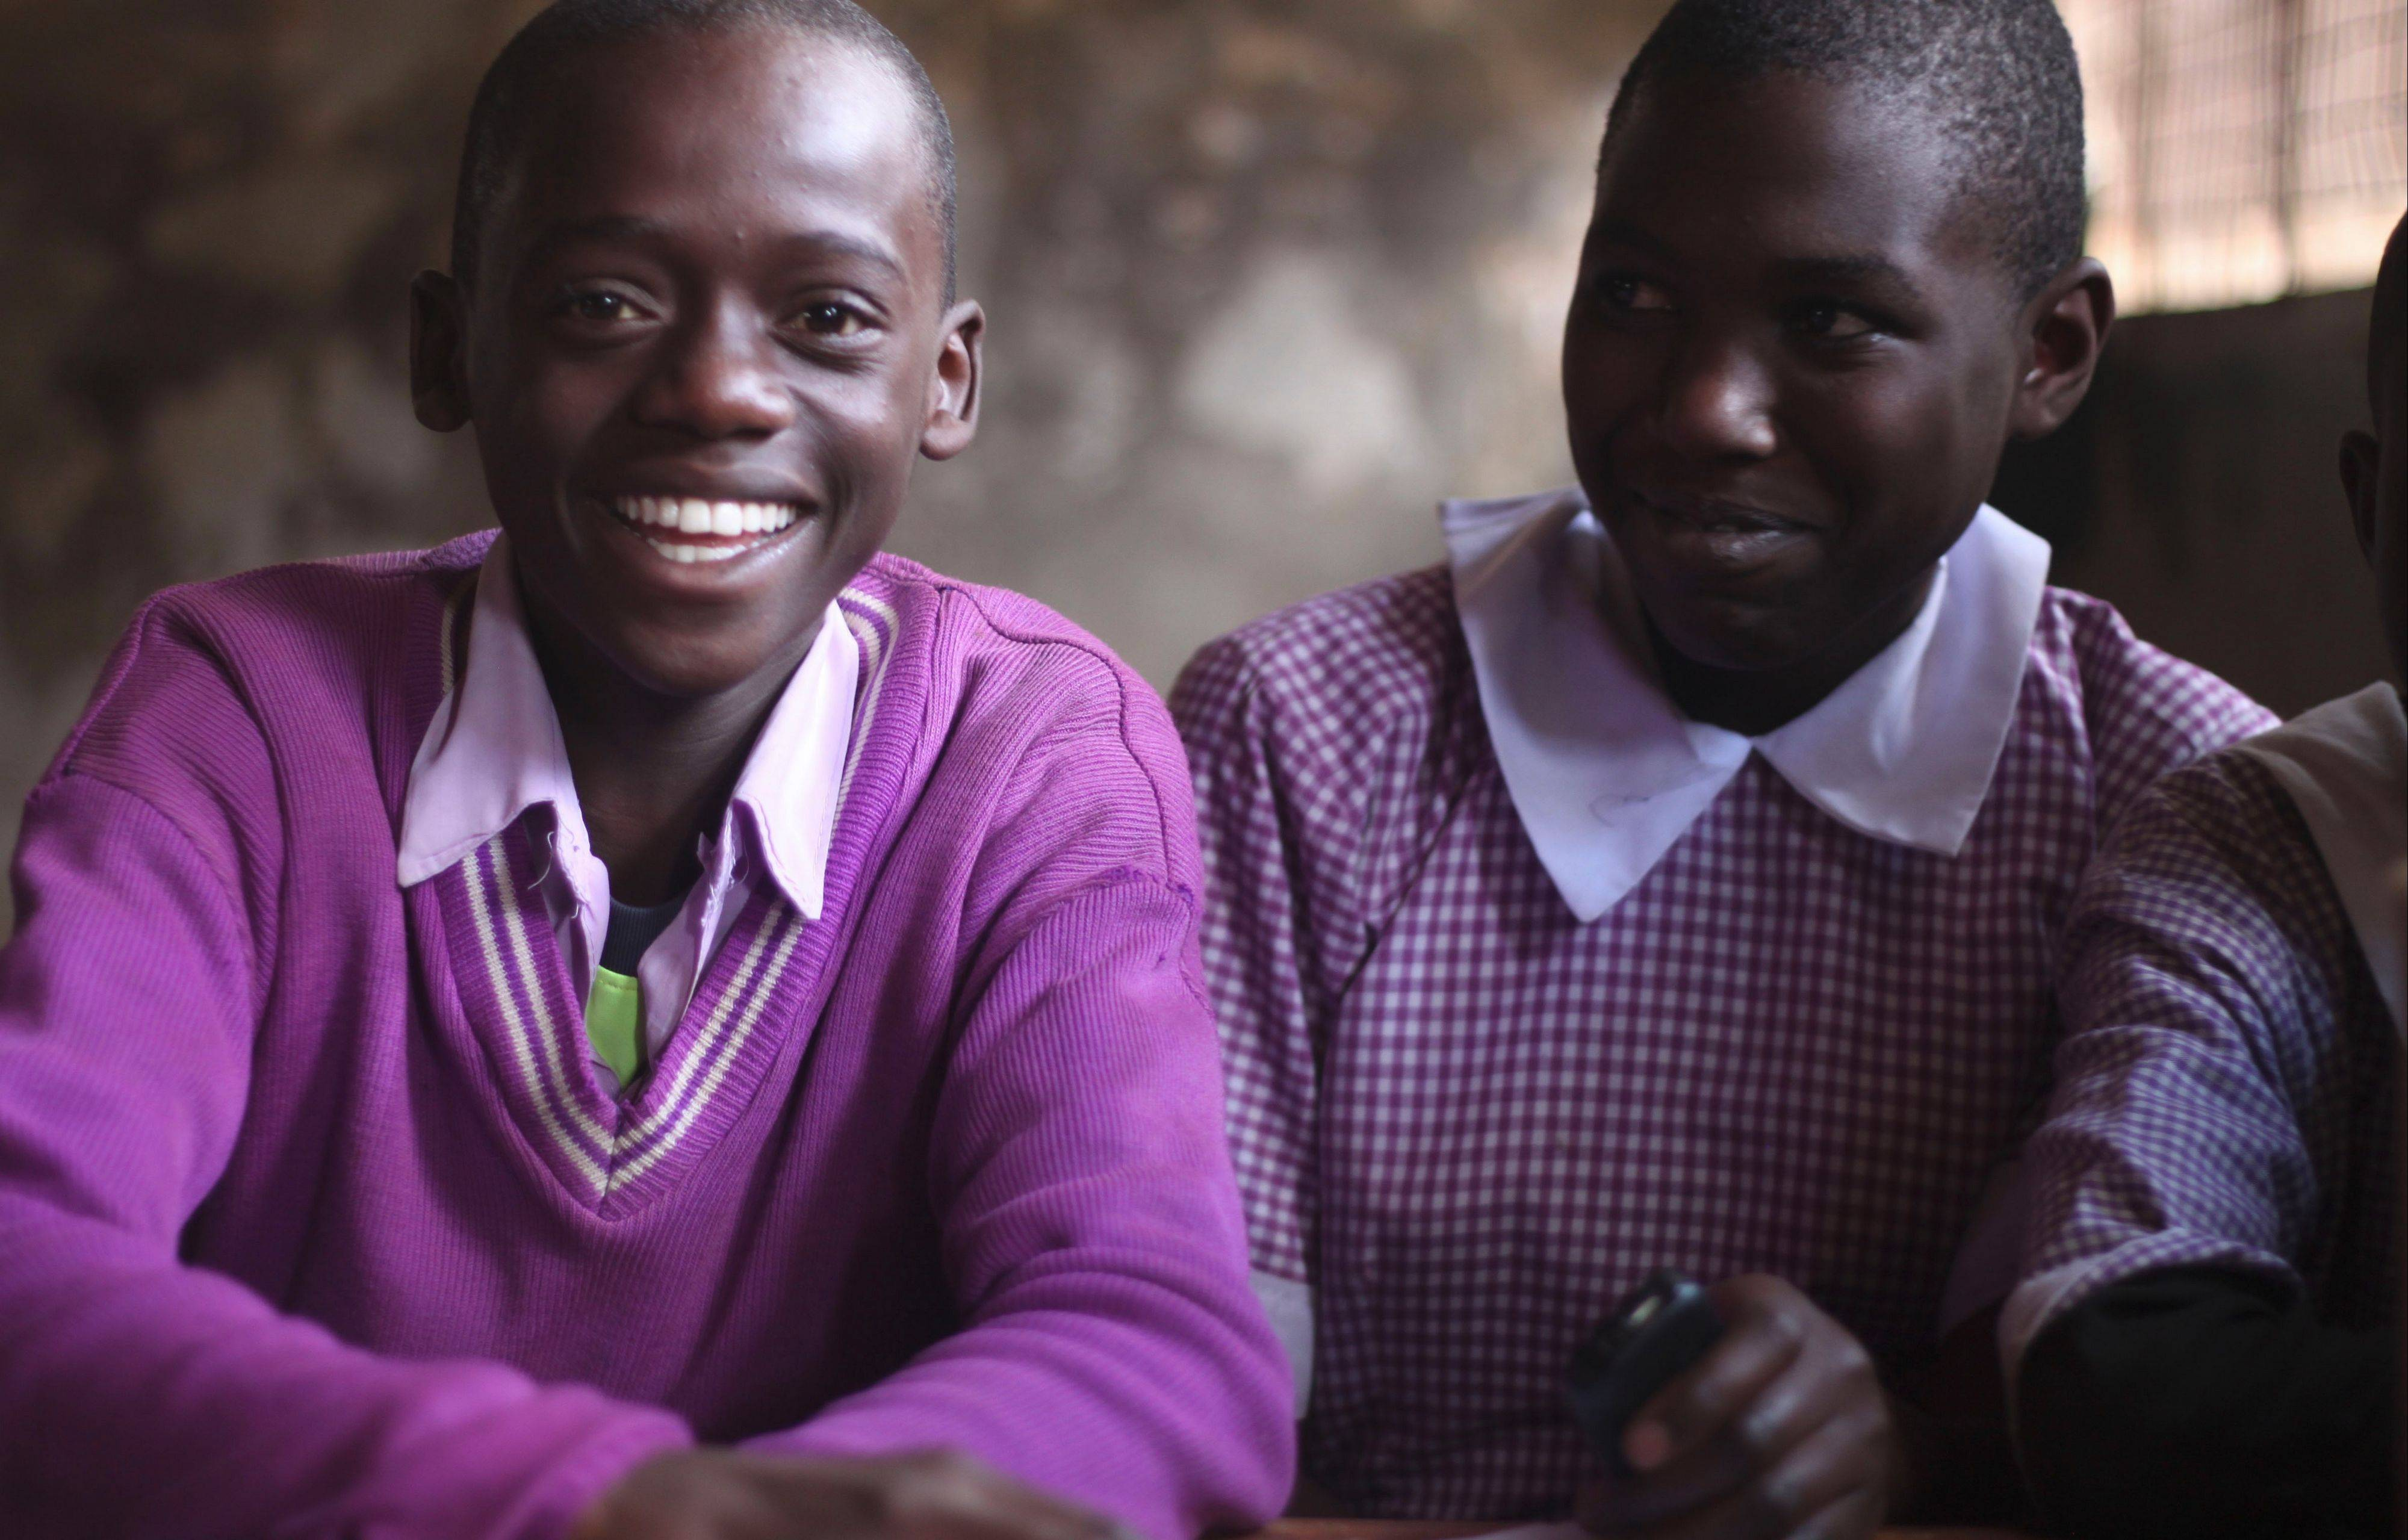 Boys Maxwel, left, and Lavender use cellphones at Chandaria Primary School in Nairobi, Kenya, thanks to an innovative educational program started by Bartlett native Toni Maraviglia.